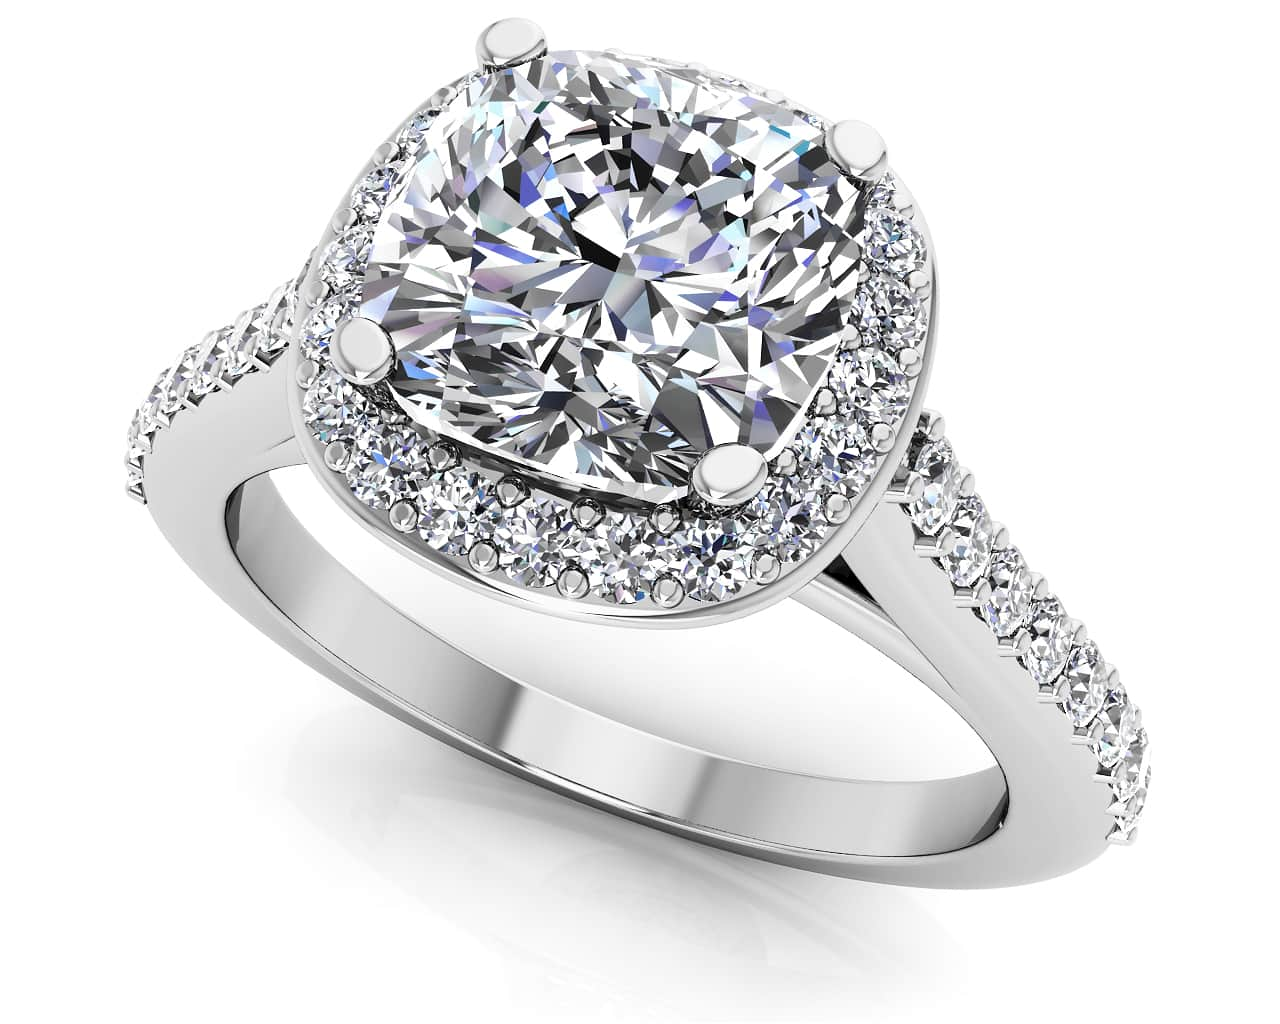 dimond platinum category l illusion ernest white number jones diamond gold product occasion set engagement rings webstore solitaire jewellery ring